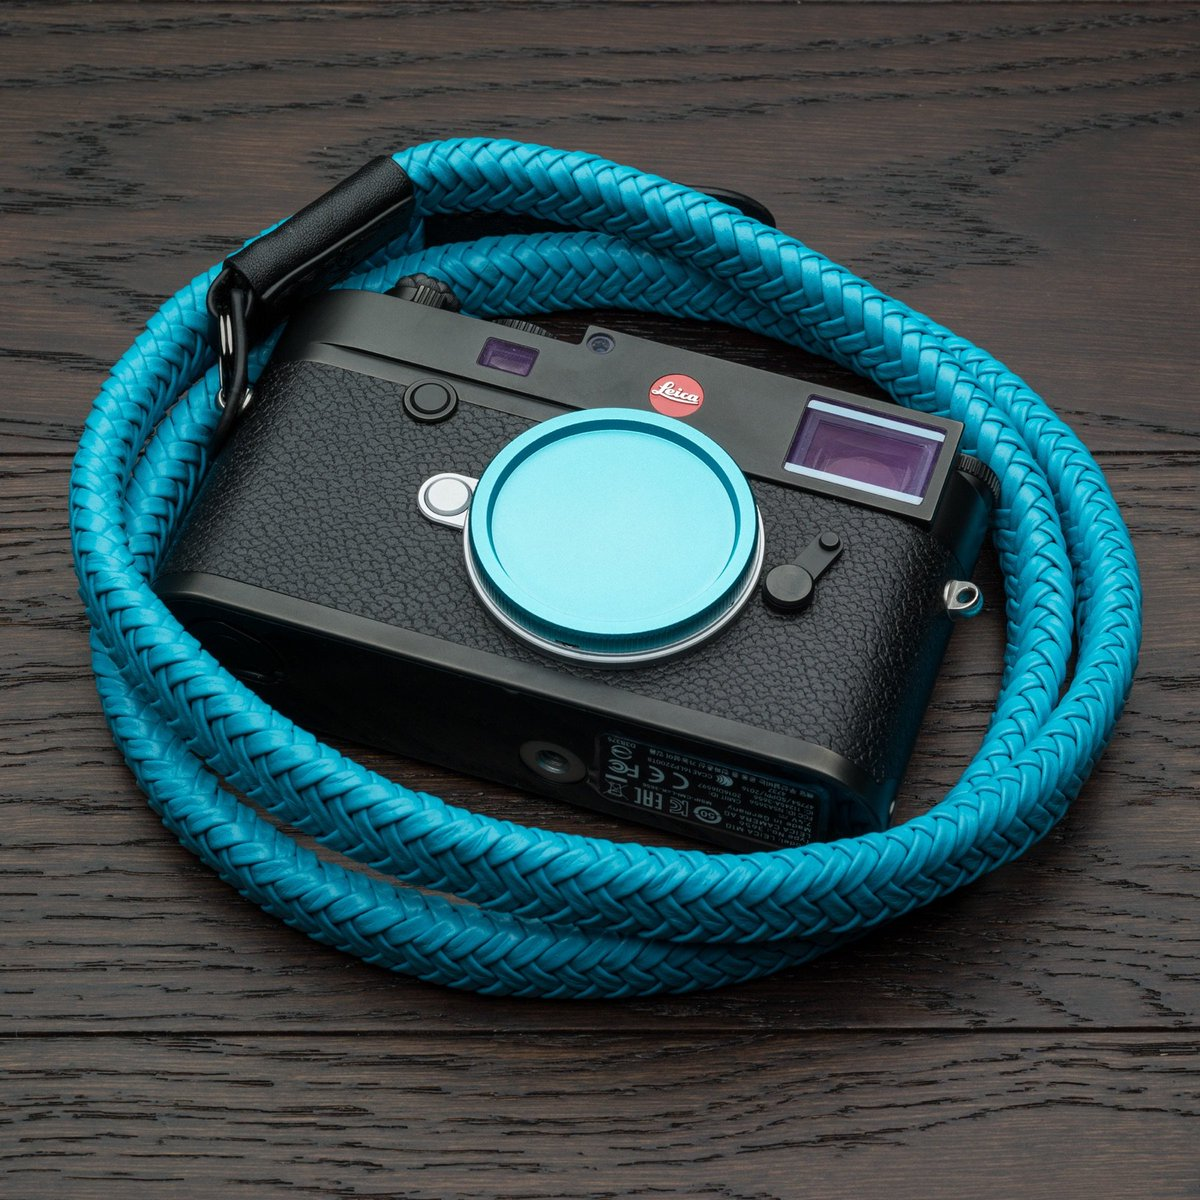 Limited time offer: selected Vi Vante camera straps now come